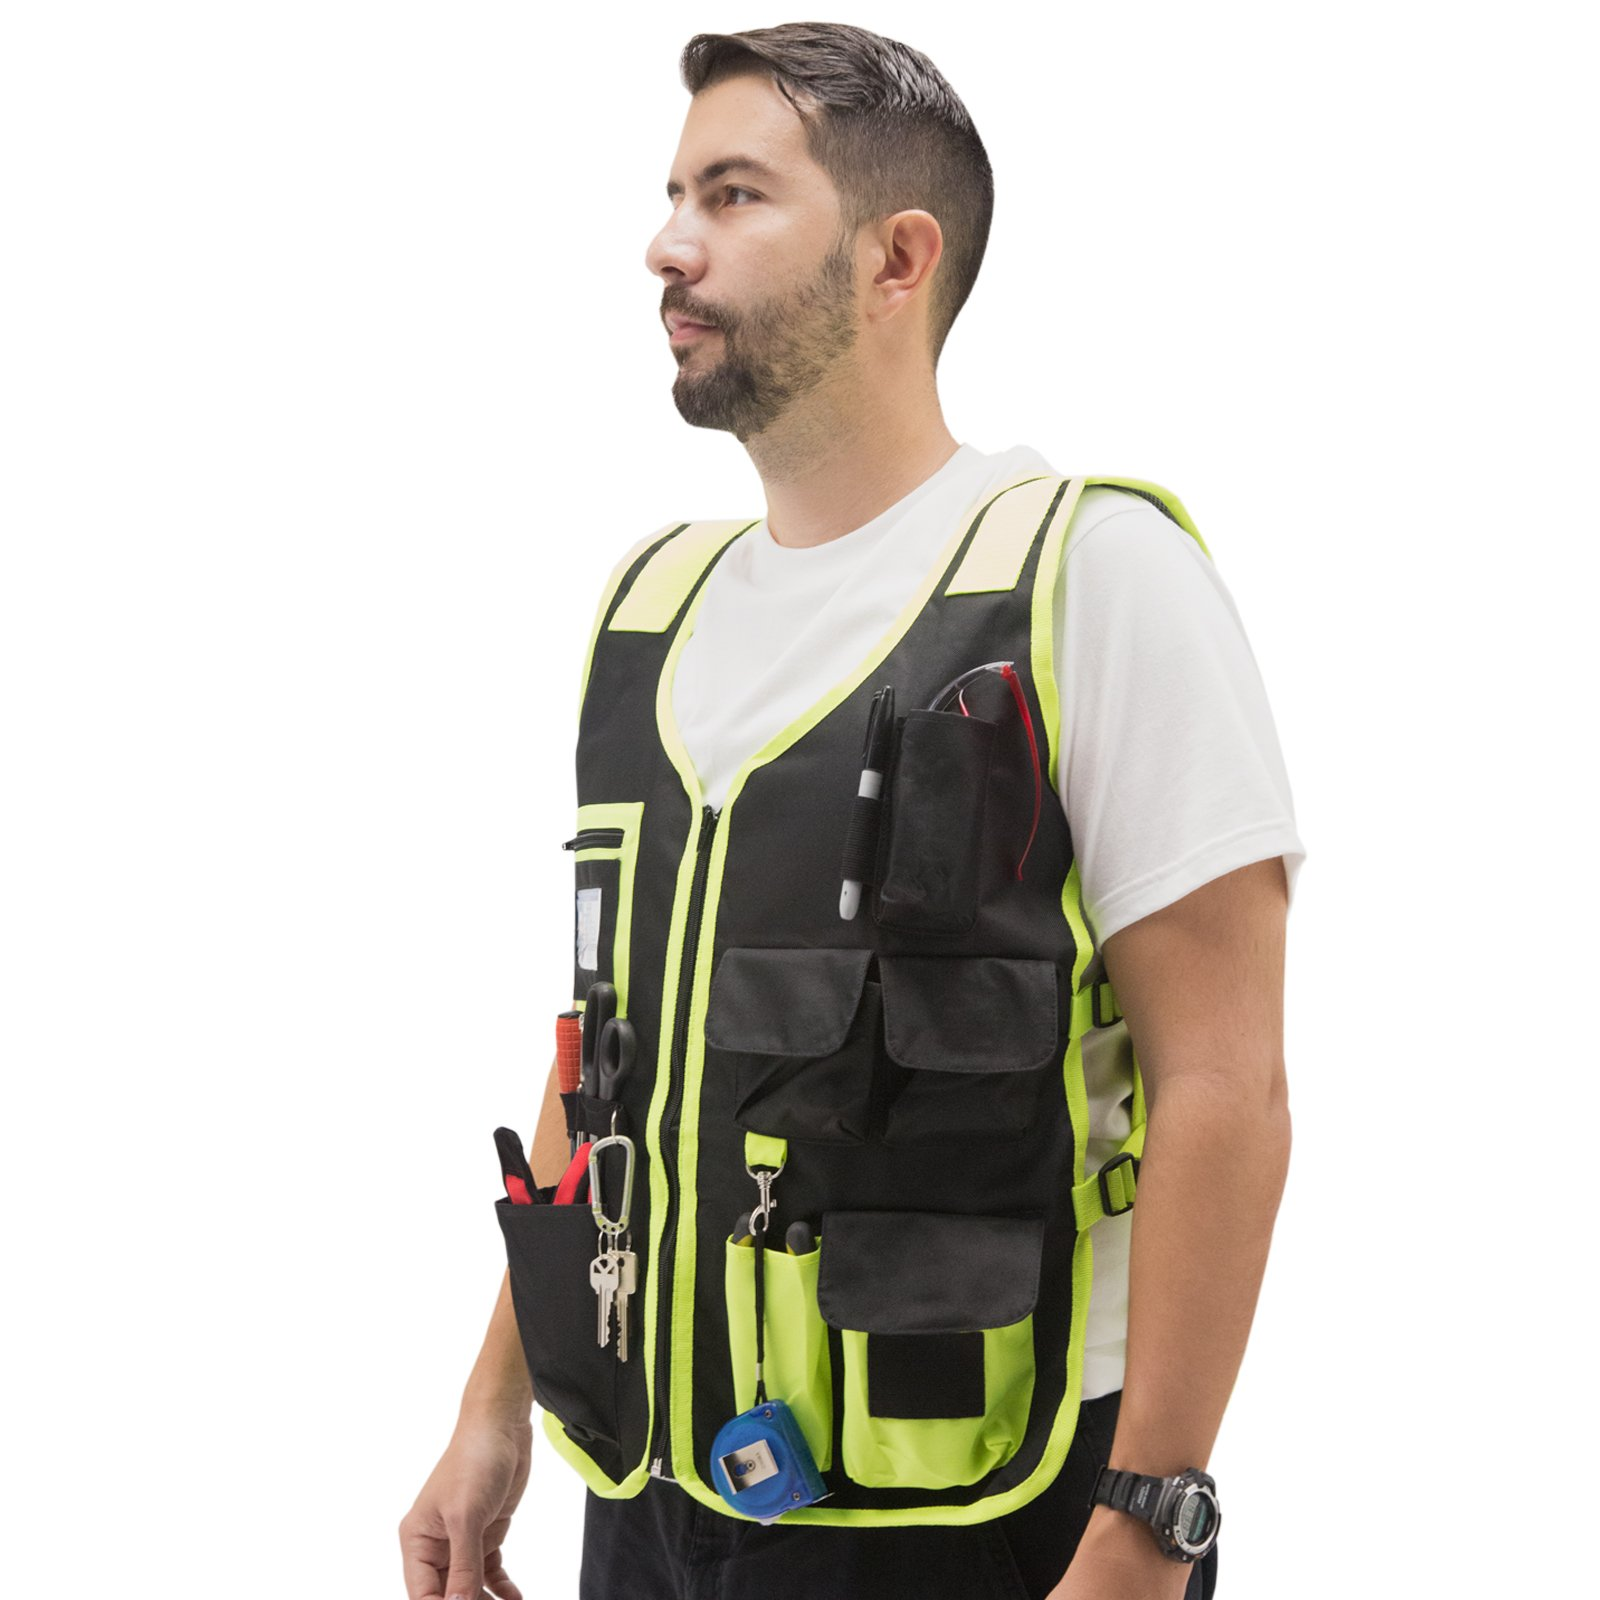 JORESTECH High Visibility Tool Vest with reflective strips (Green)